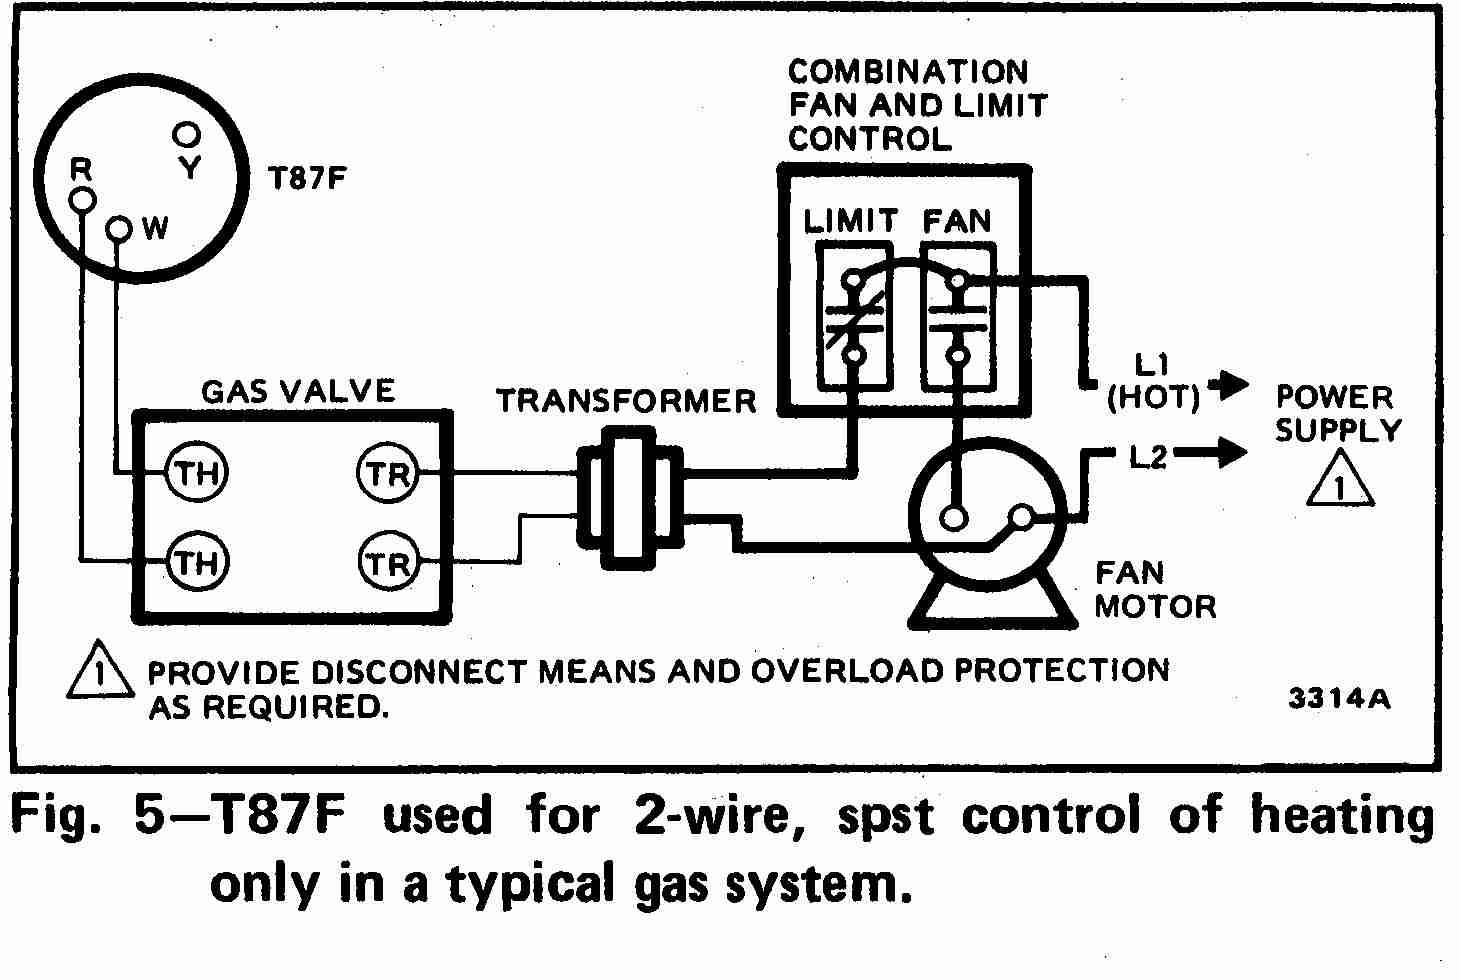 Diagram Dc Thermostat Wiring Diagram Full Version Hd Quality Wiring Diagram Diagramnoblea Gisbertovalori It